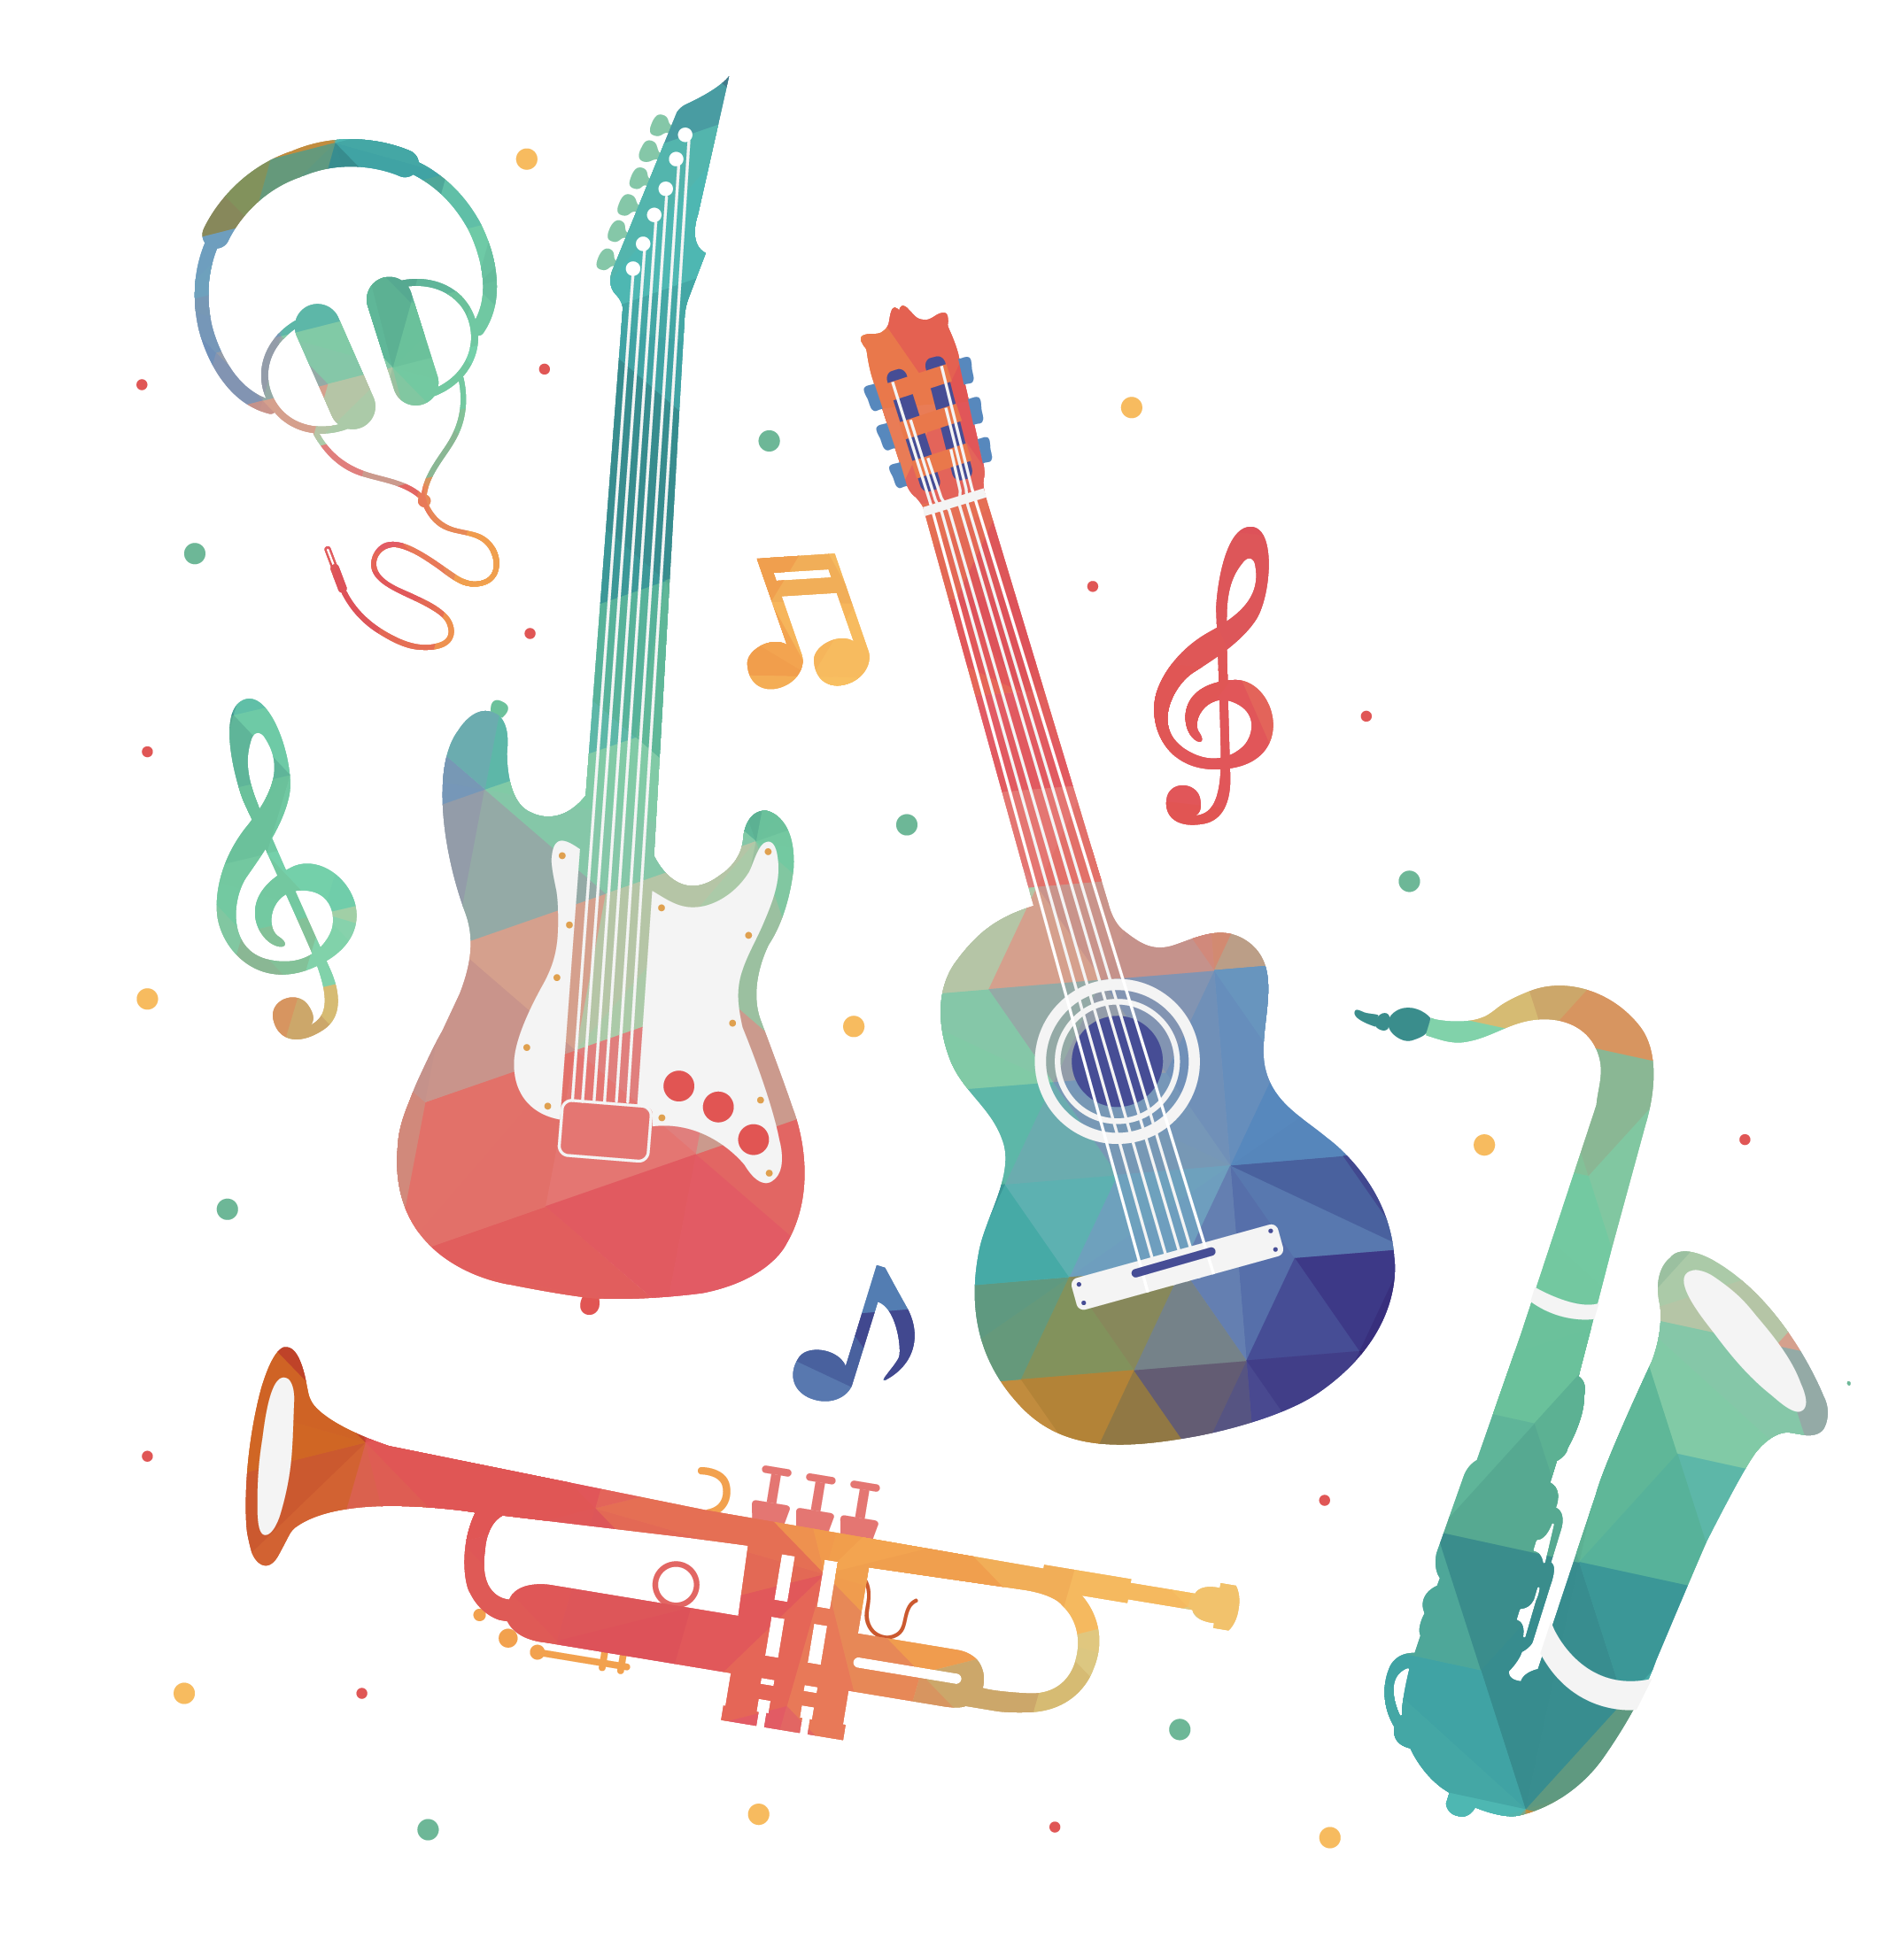 This business of music. Geometry clipart instrument